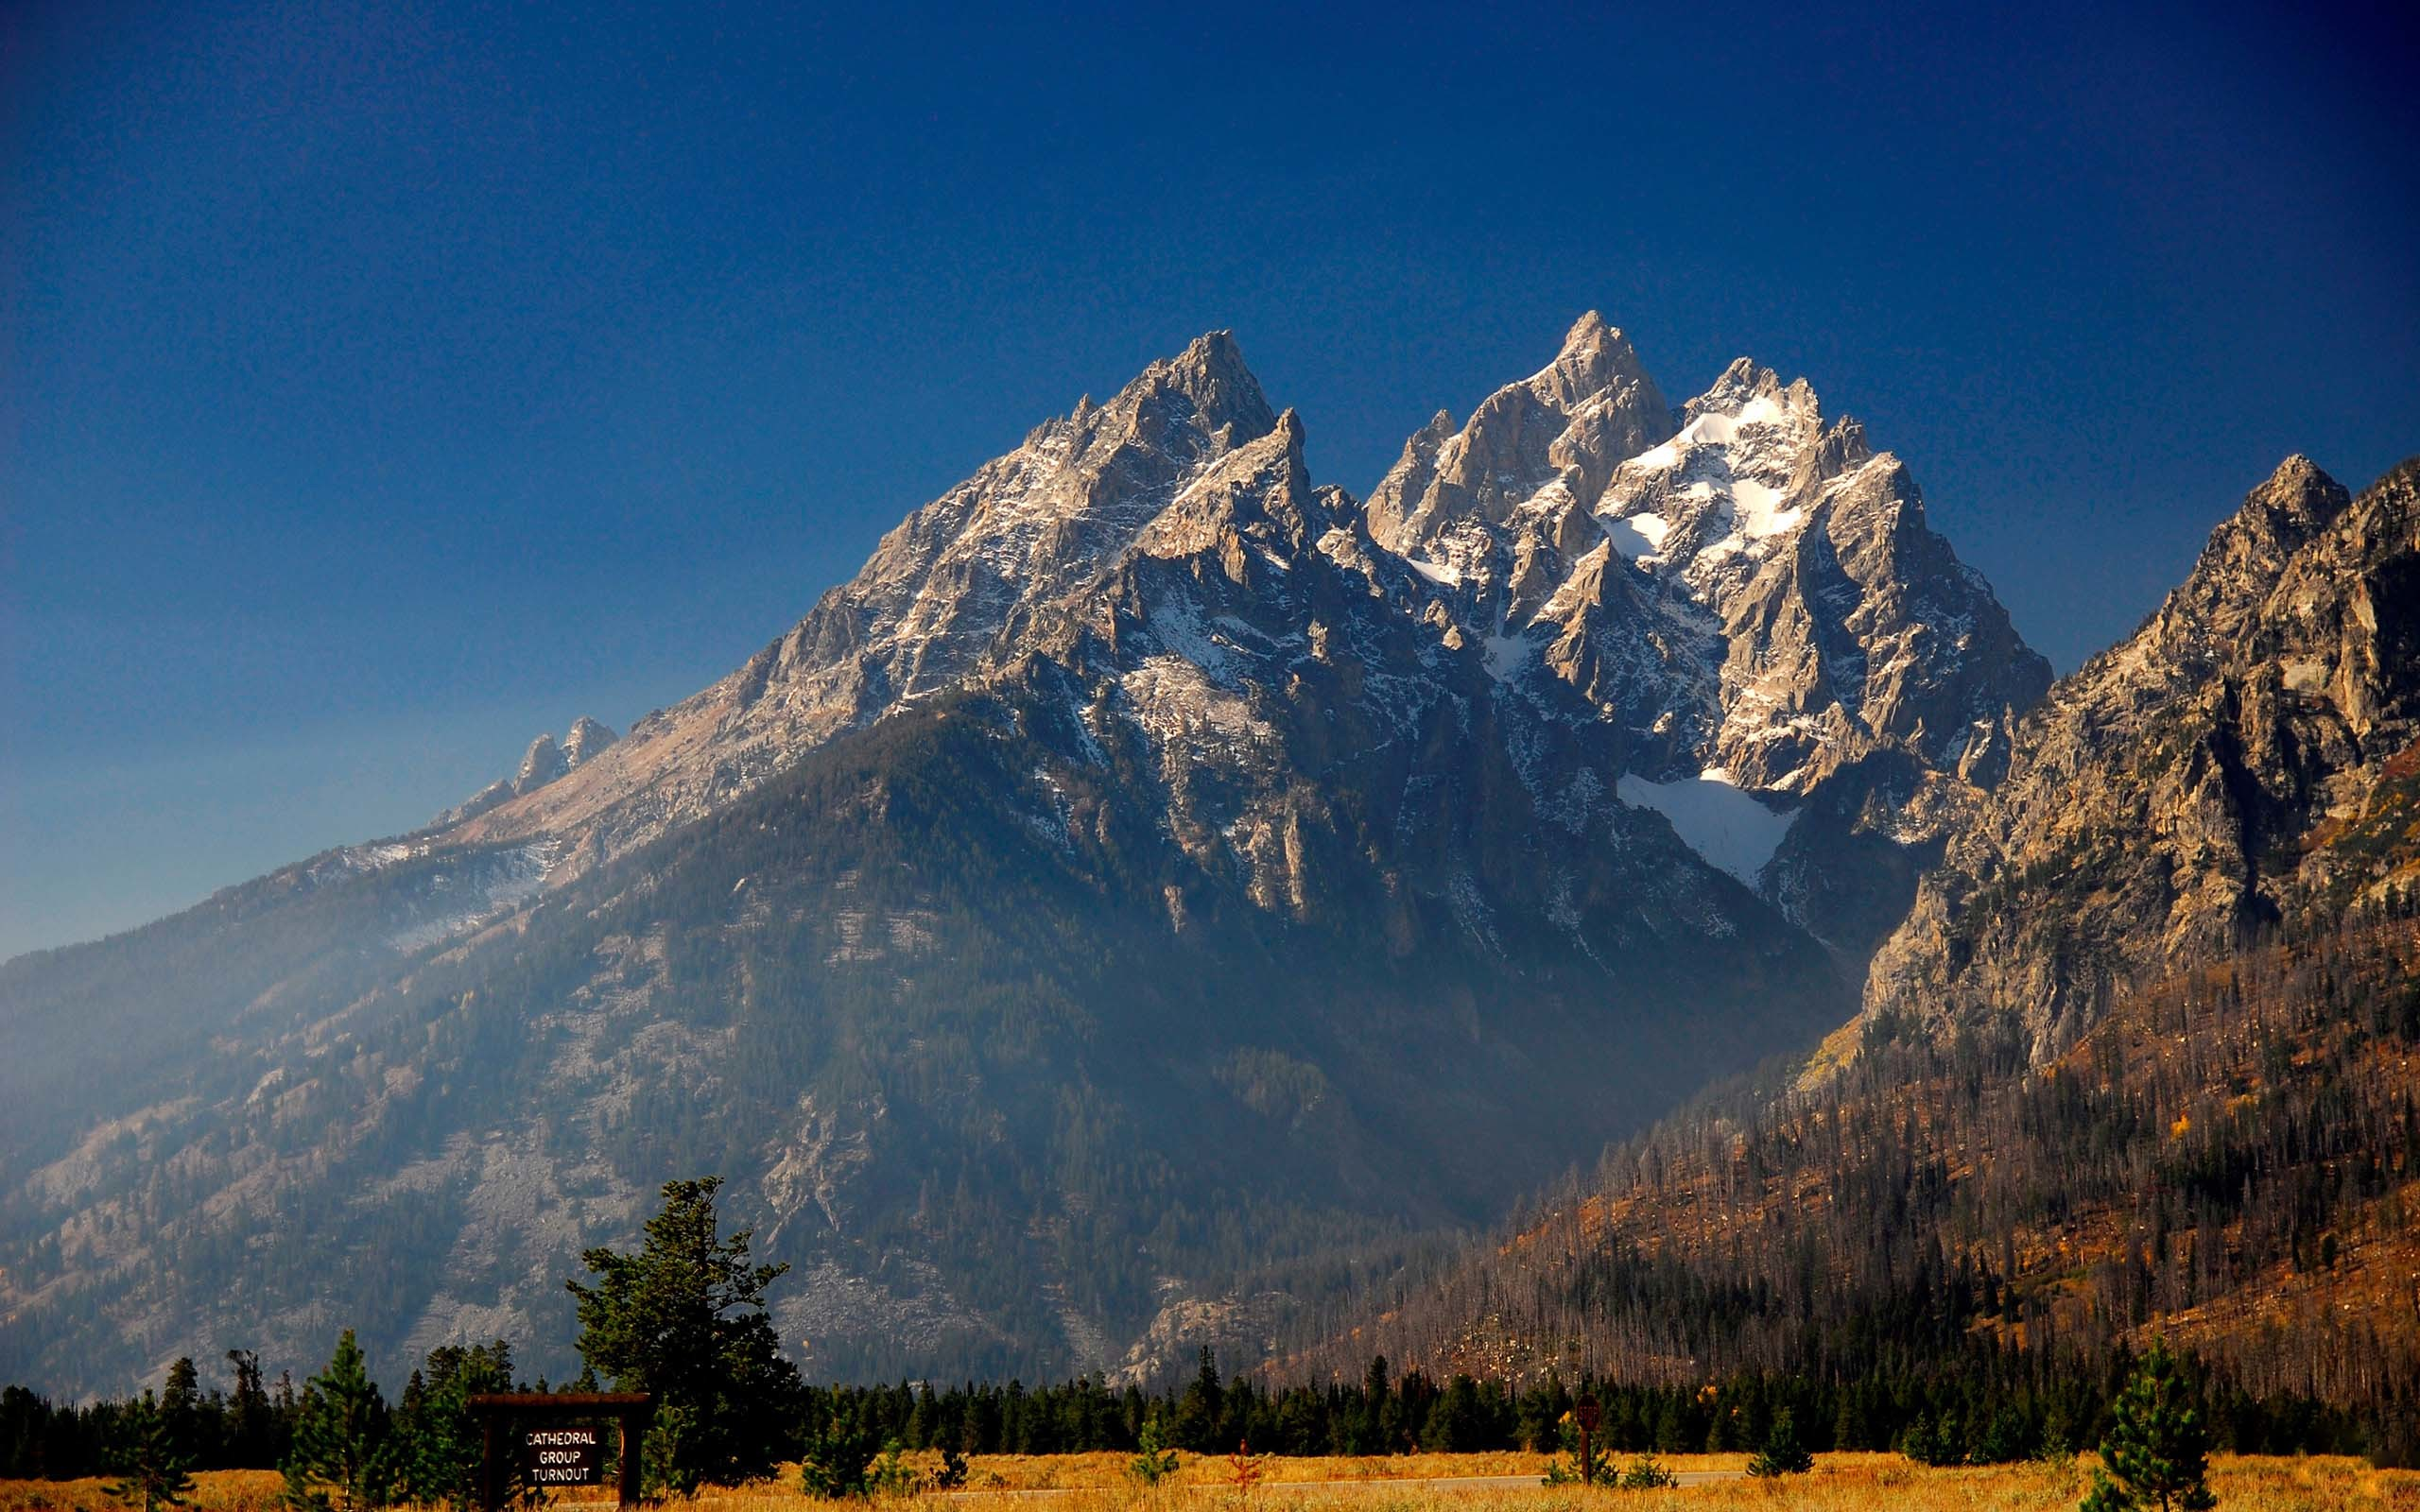 mountain background images 183��